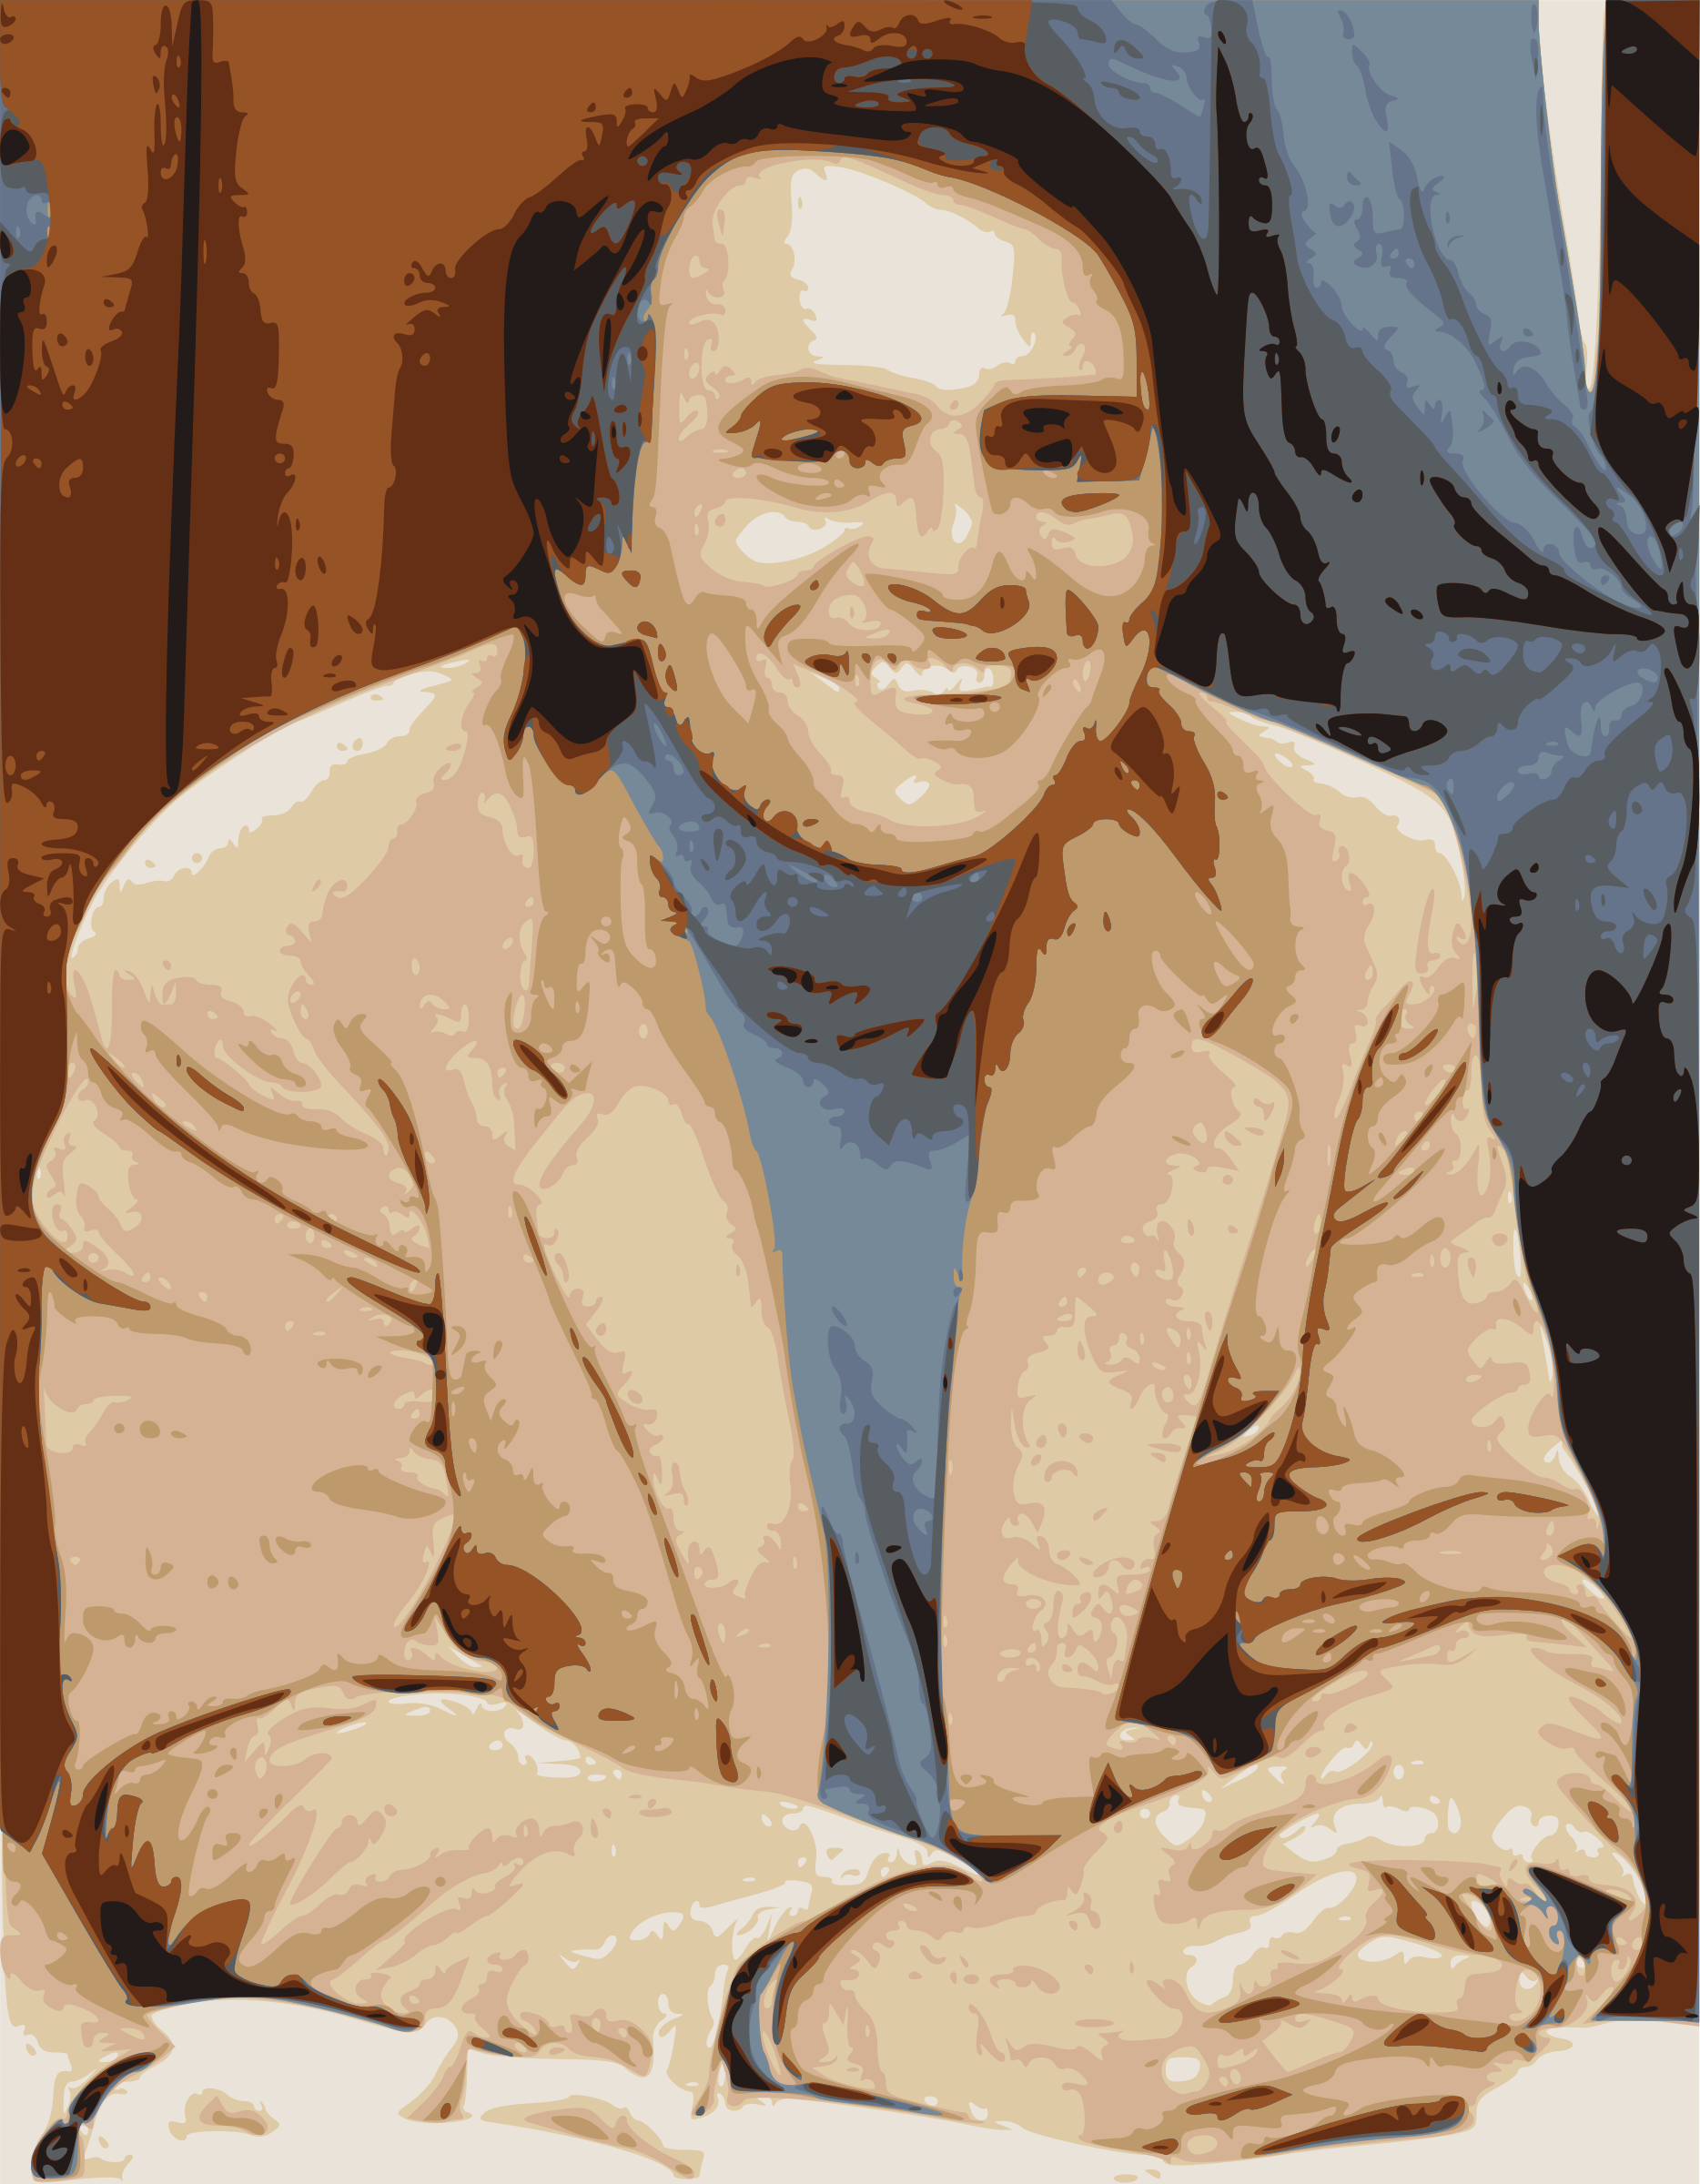 Carl Sagan by j4p4n